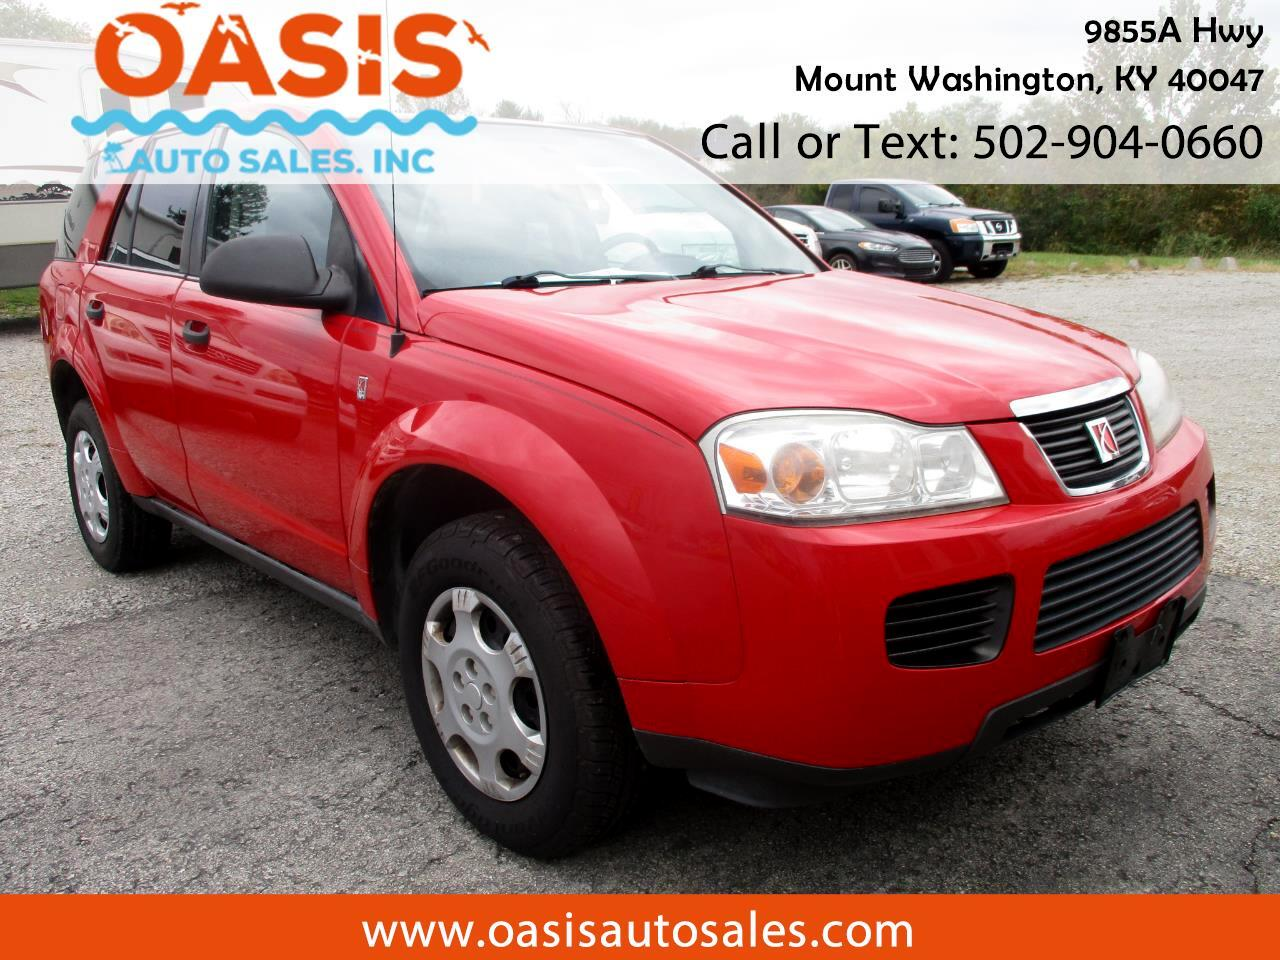 2007 Saturn VUE FWD 4dr I4 Manual